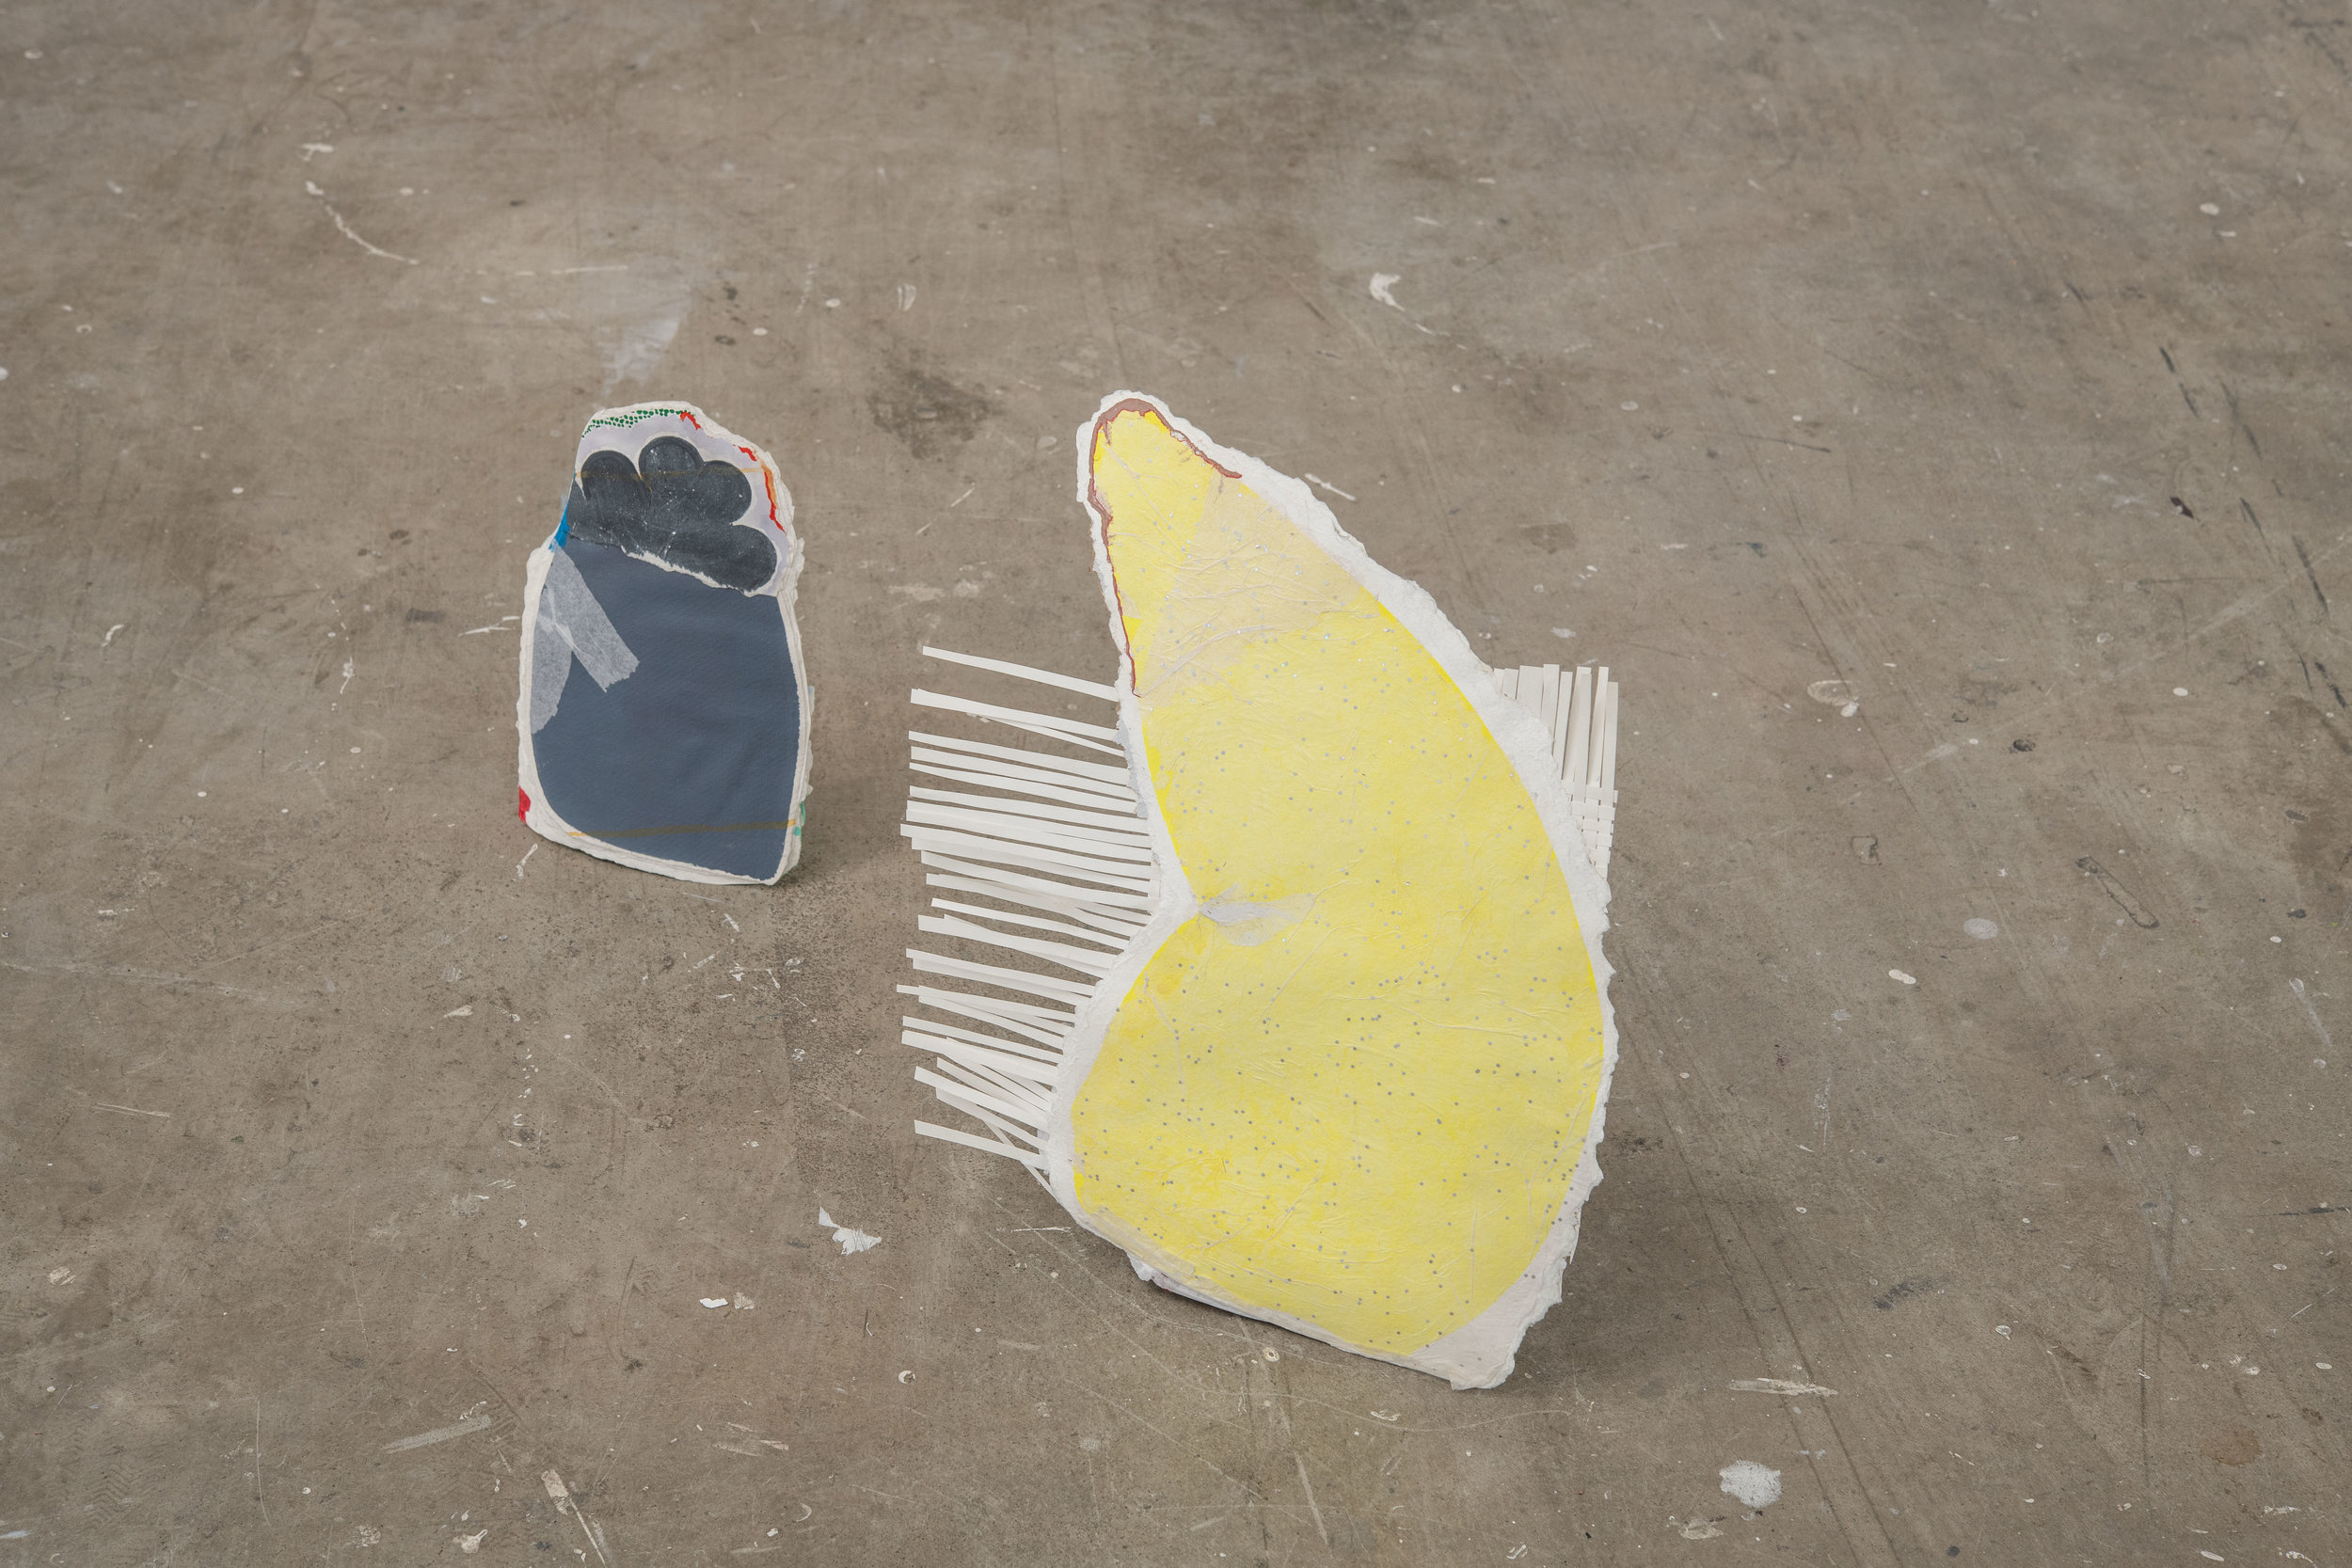 Ground (grey drawing)   /   Ground (yellow drawing)